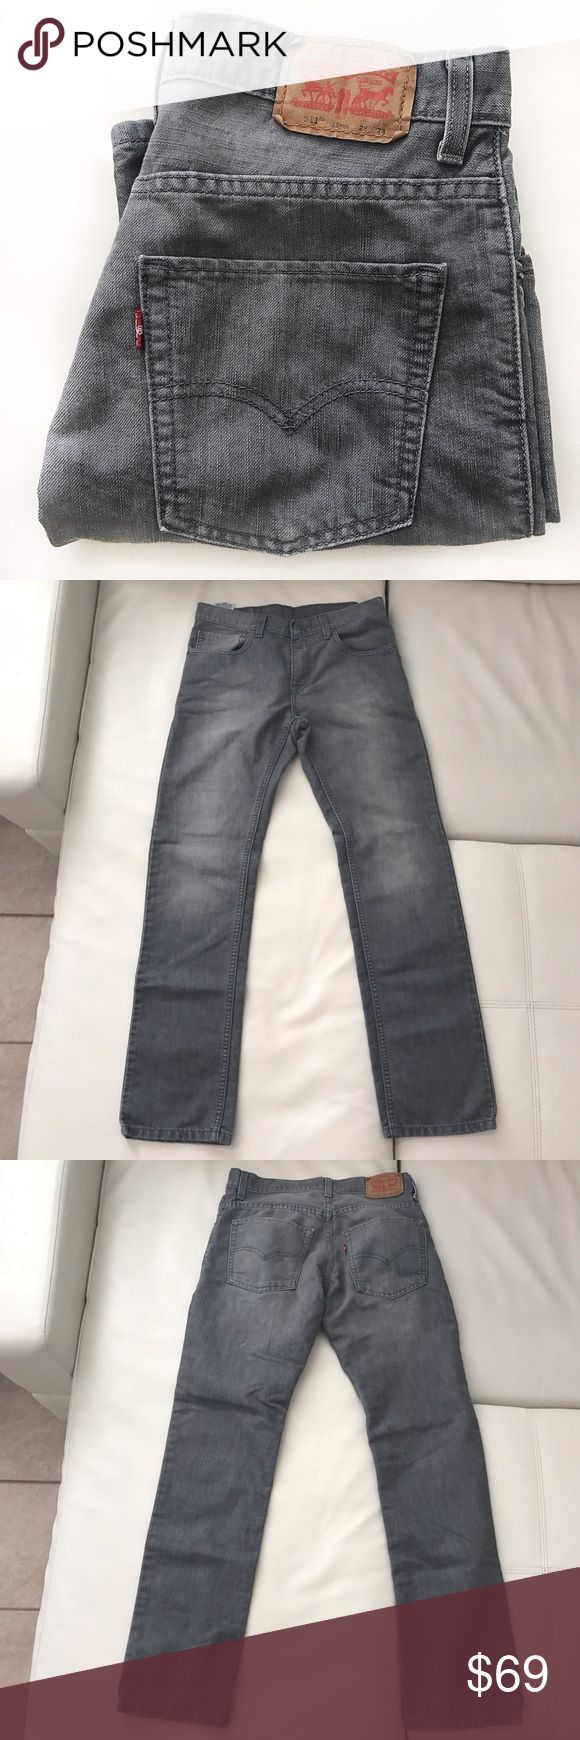 "LEVI'S 511 jeans gray straight cut size 28 Gray jeans is a classic staple in a minimalist wardrobe. Great for spring and fall.  👖Waist 28"" 👖Rise 9"" 👖Inseam 29.5"" Levi's Jeans Straight Leg"